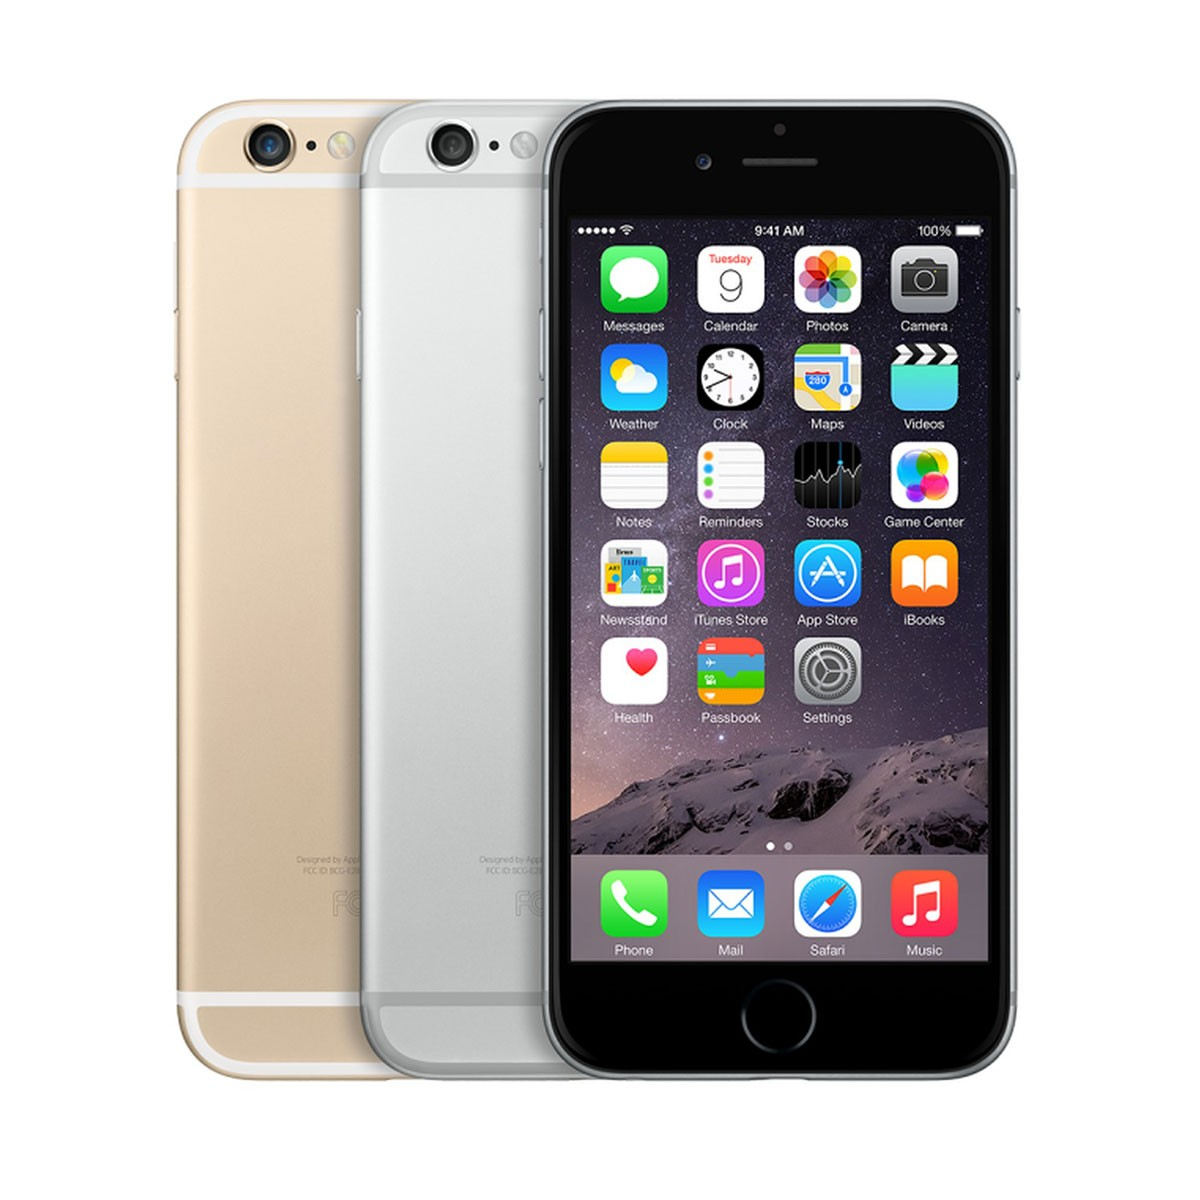 Apple iPhone 6 Plus 16Gb Space Grey/Gold/Silver (Refurbished)